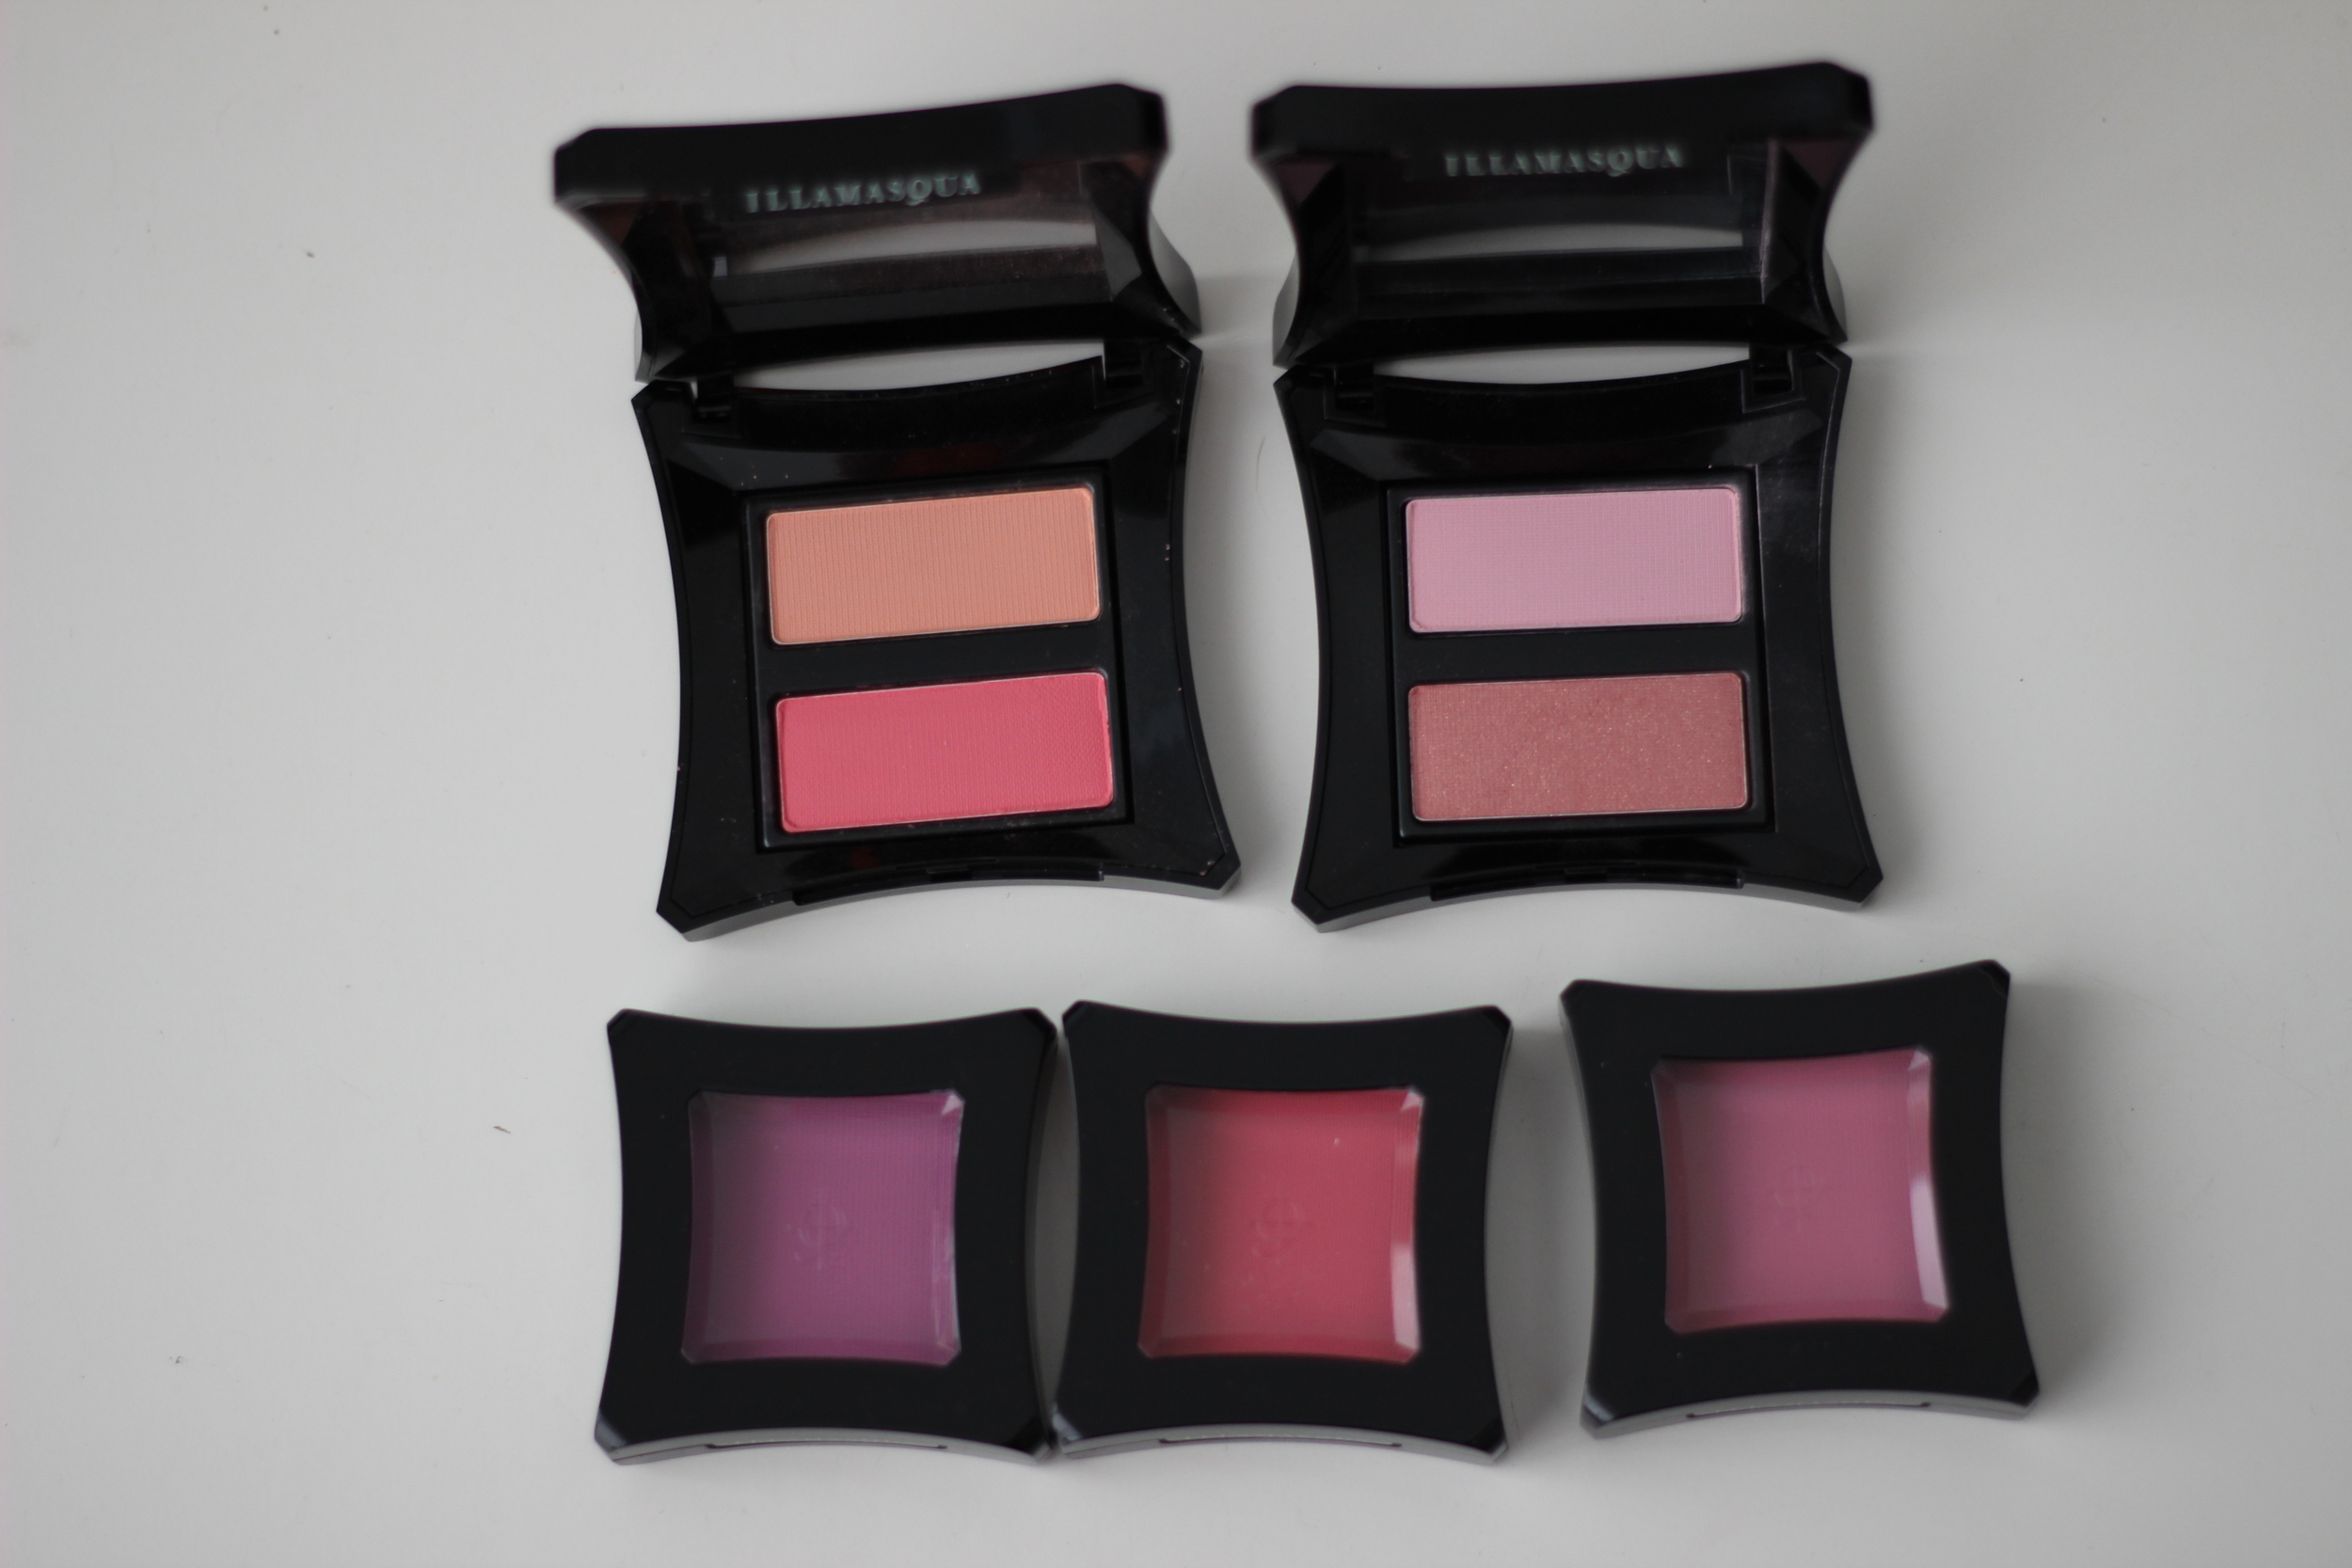 Top Left to Right Blusher Duos:  Lover/Hussy ,  Katie/Ambition   Bottom Left to Right Powder Blush:  Tweak ,  Thrust ,  Chased